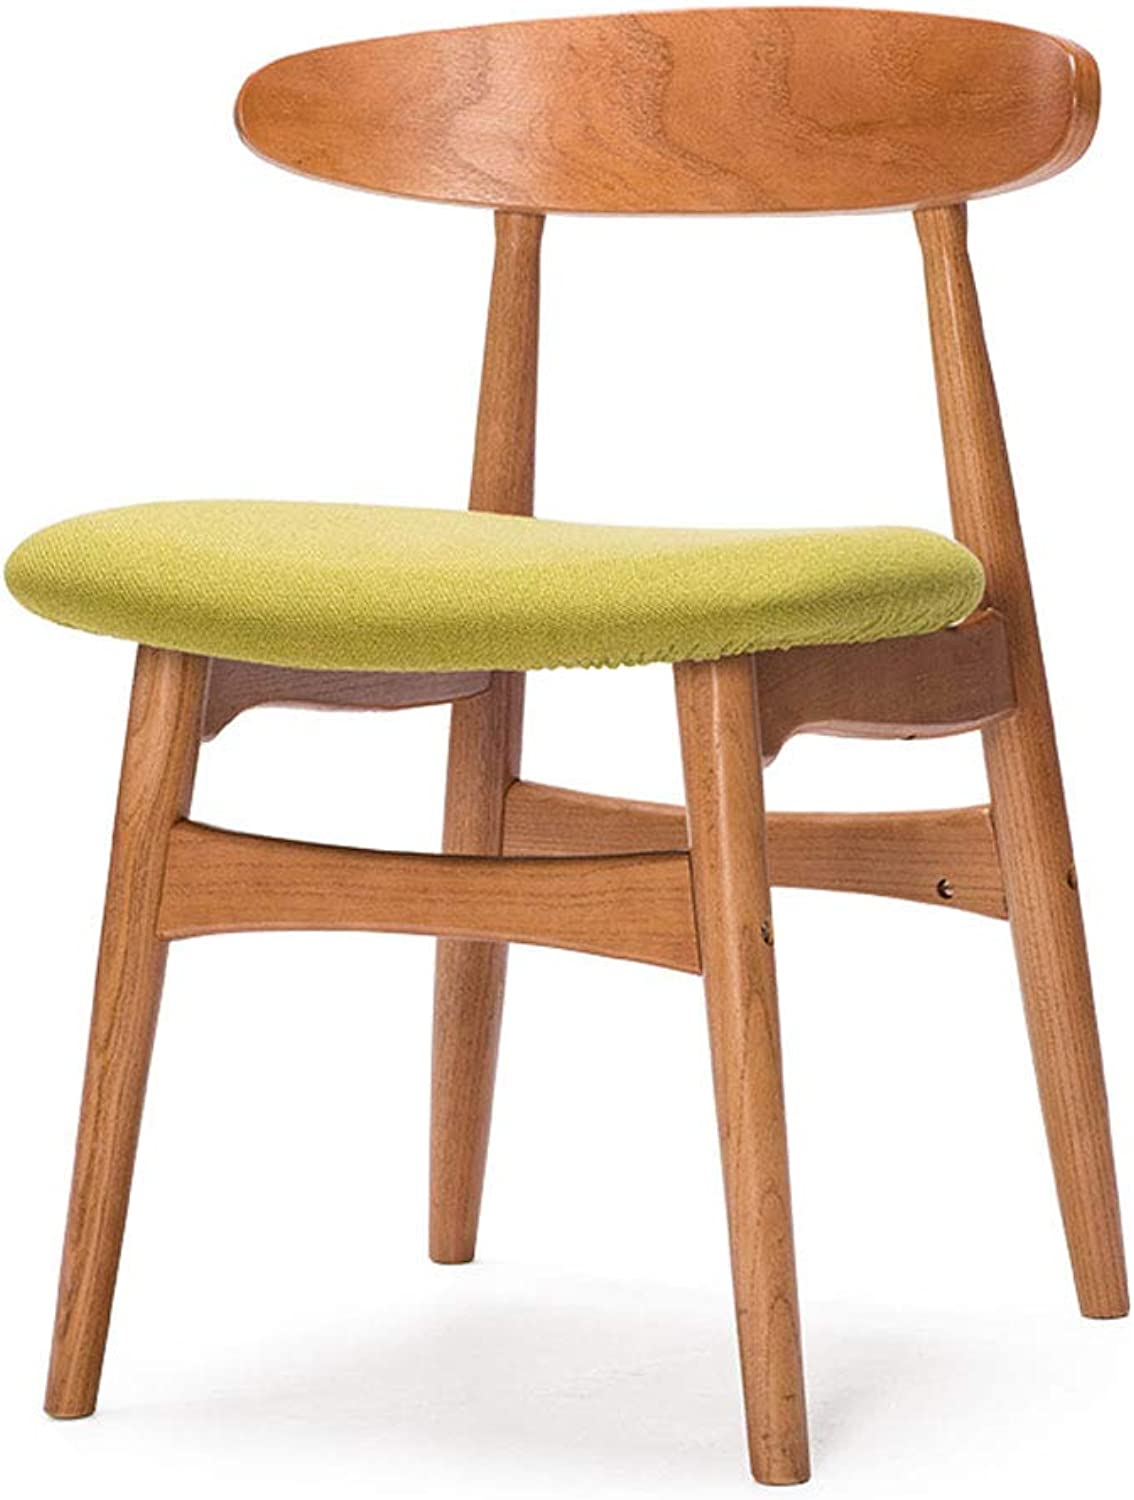 WXL Solid Wood Chair Desk Simple Coffee Shop Chair Nordic Retro Chair Square W (color   B, Size   L43CMXW44CMXH71.5CM)